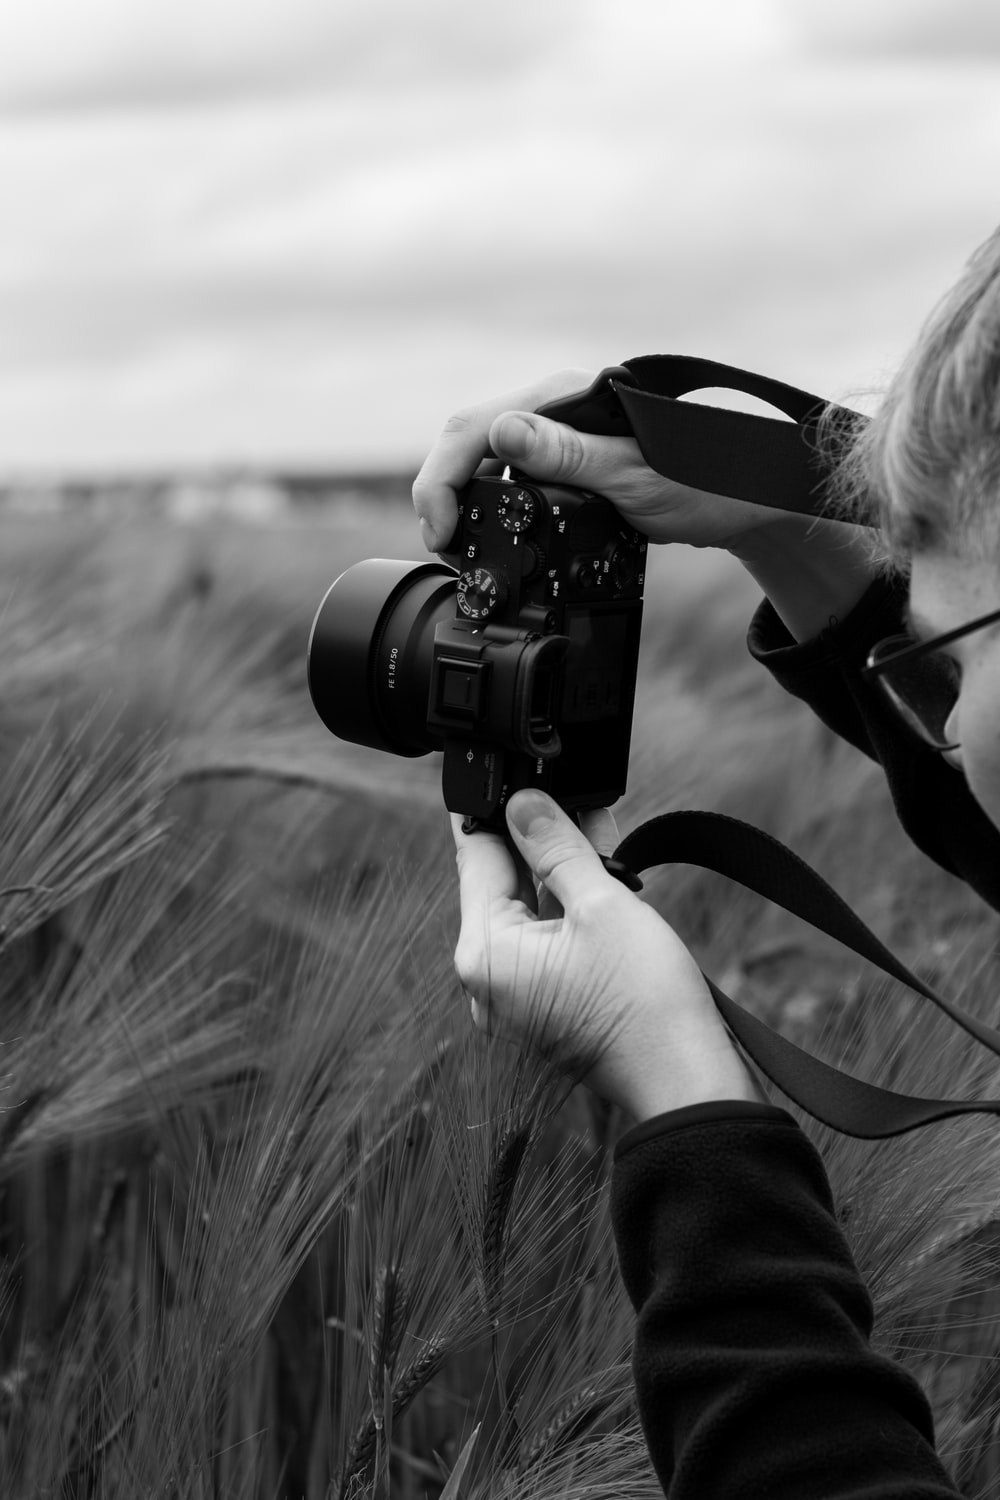 grayscale photo of man holding dslr camera